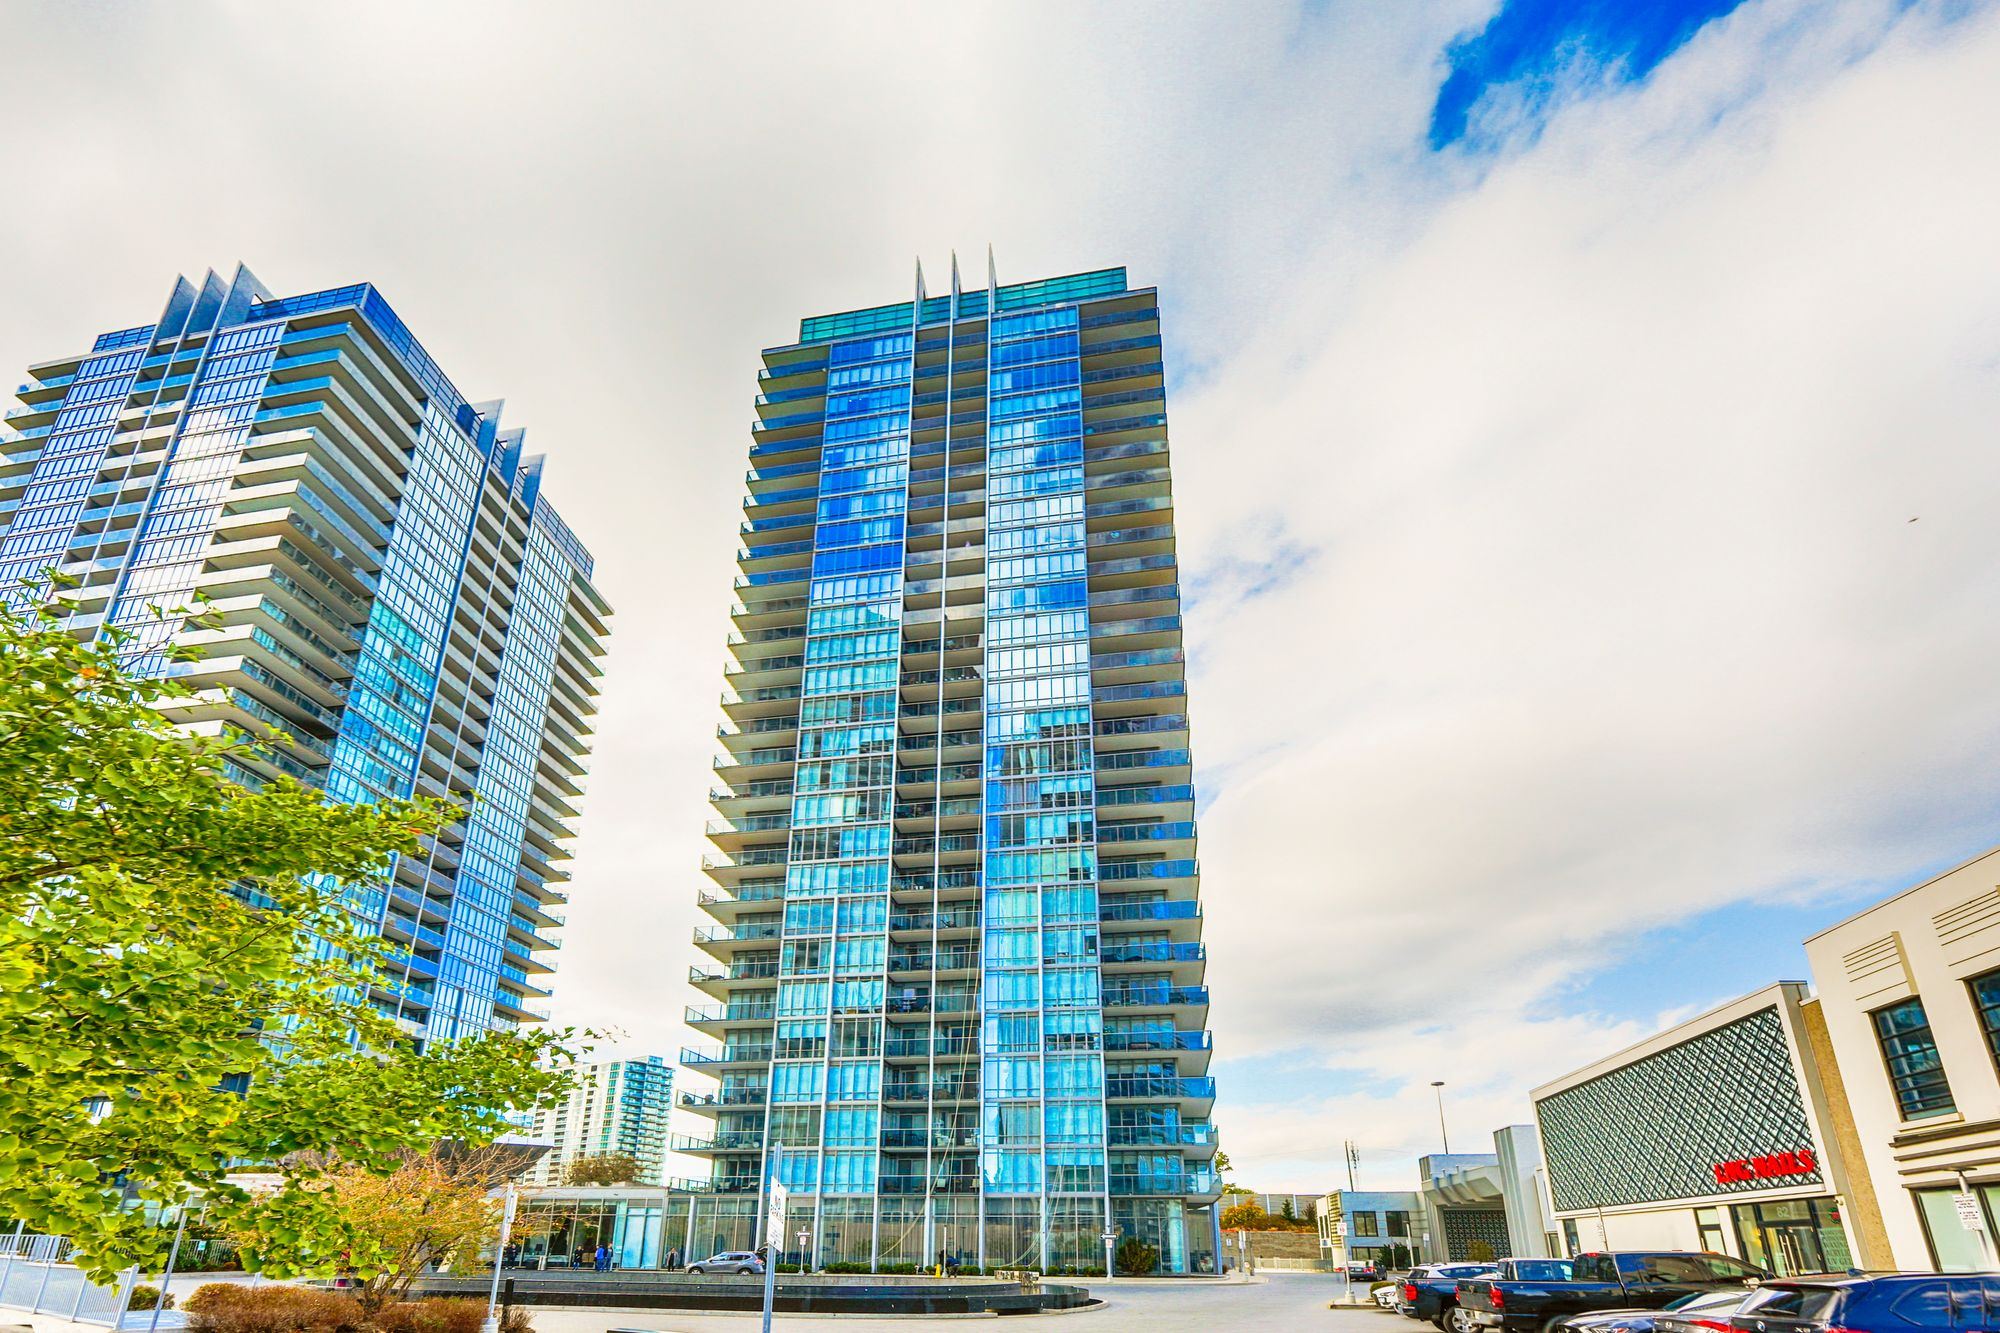 88 Park Lawn Rd. This condo at South Beach Condos is located in  Etobicoke, Toronto - image #2 of 5 by Strata.ca